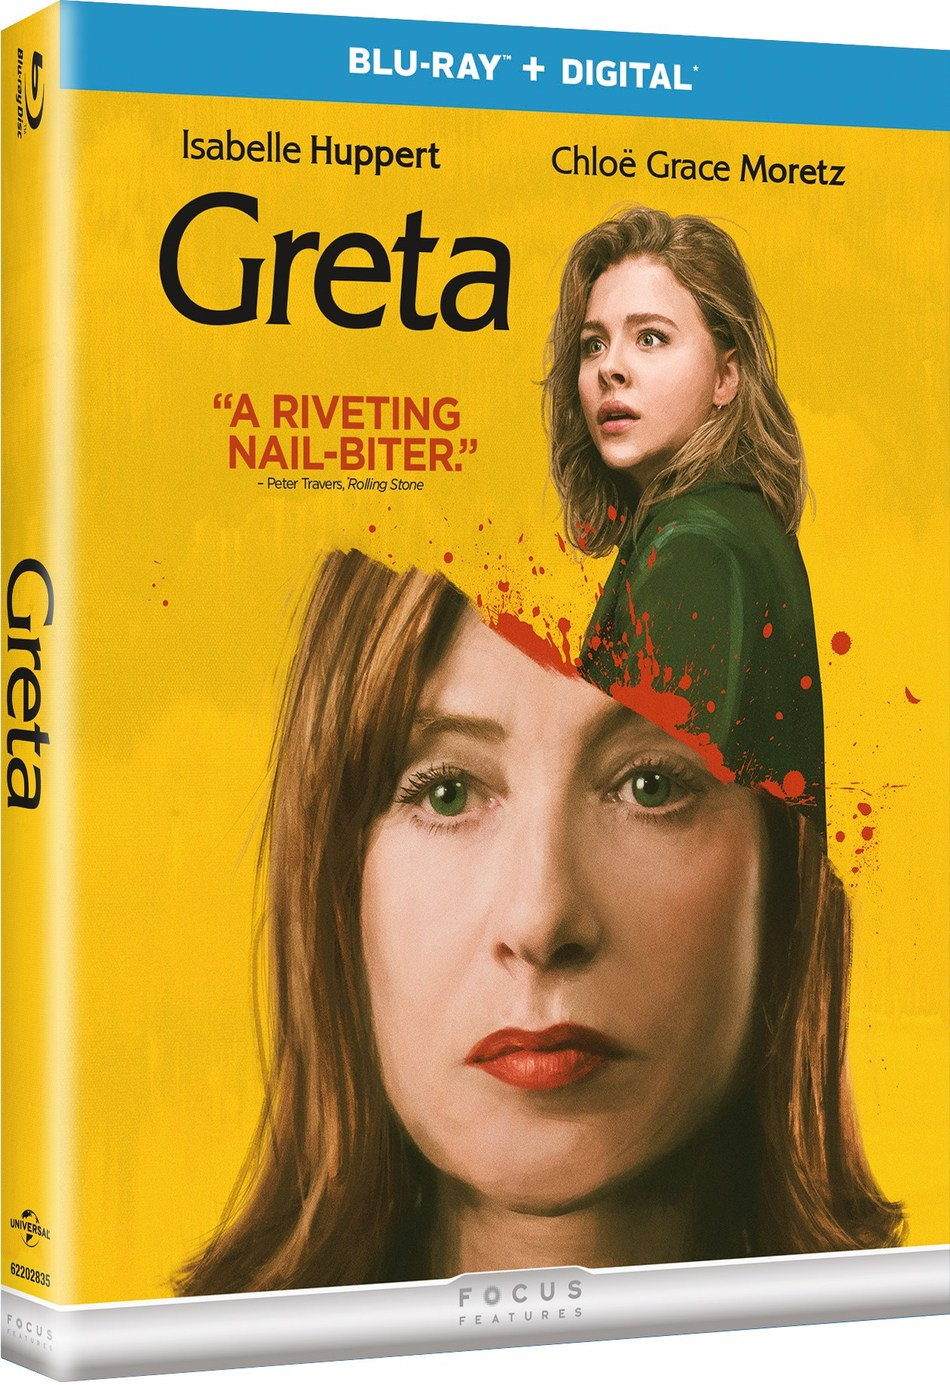 From Universal Pictures Home Entertainment: Greta